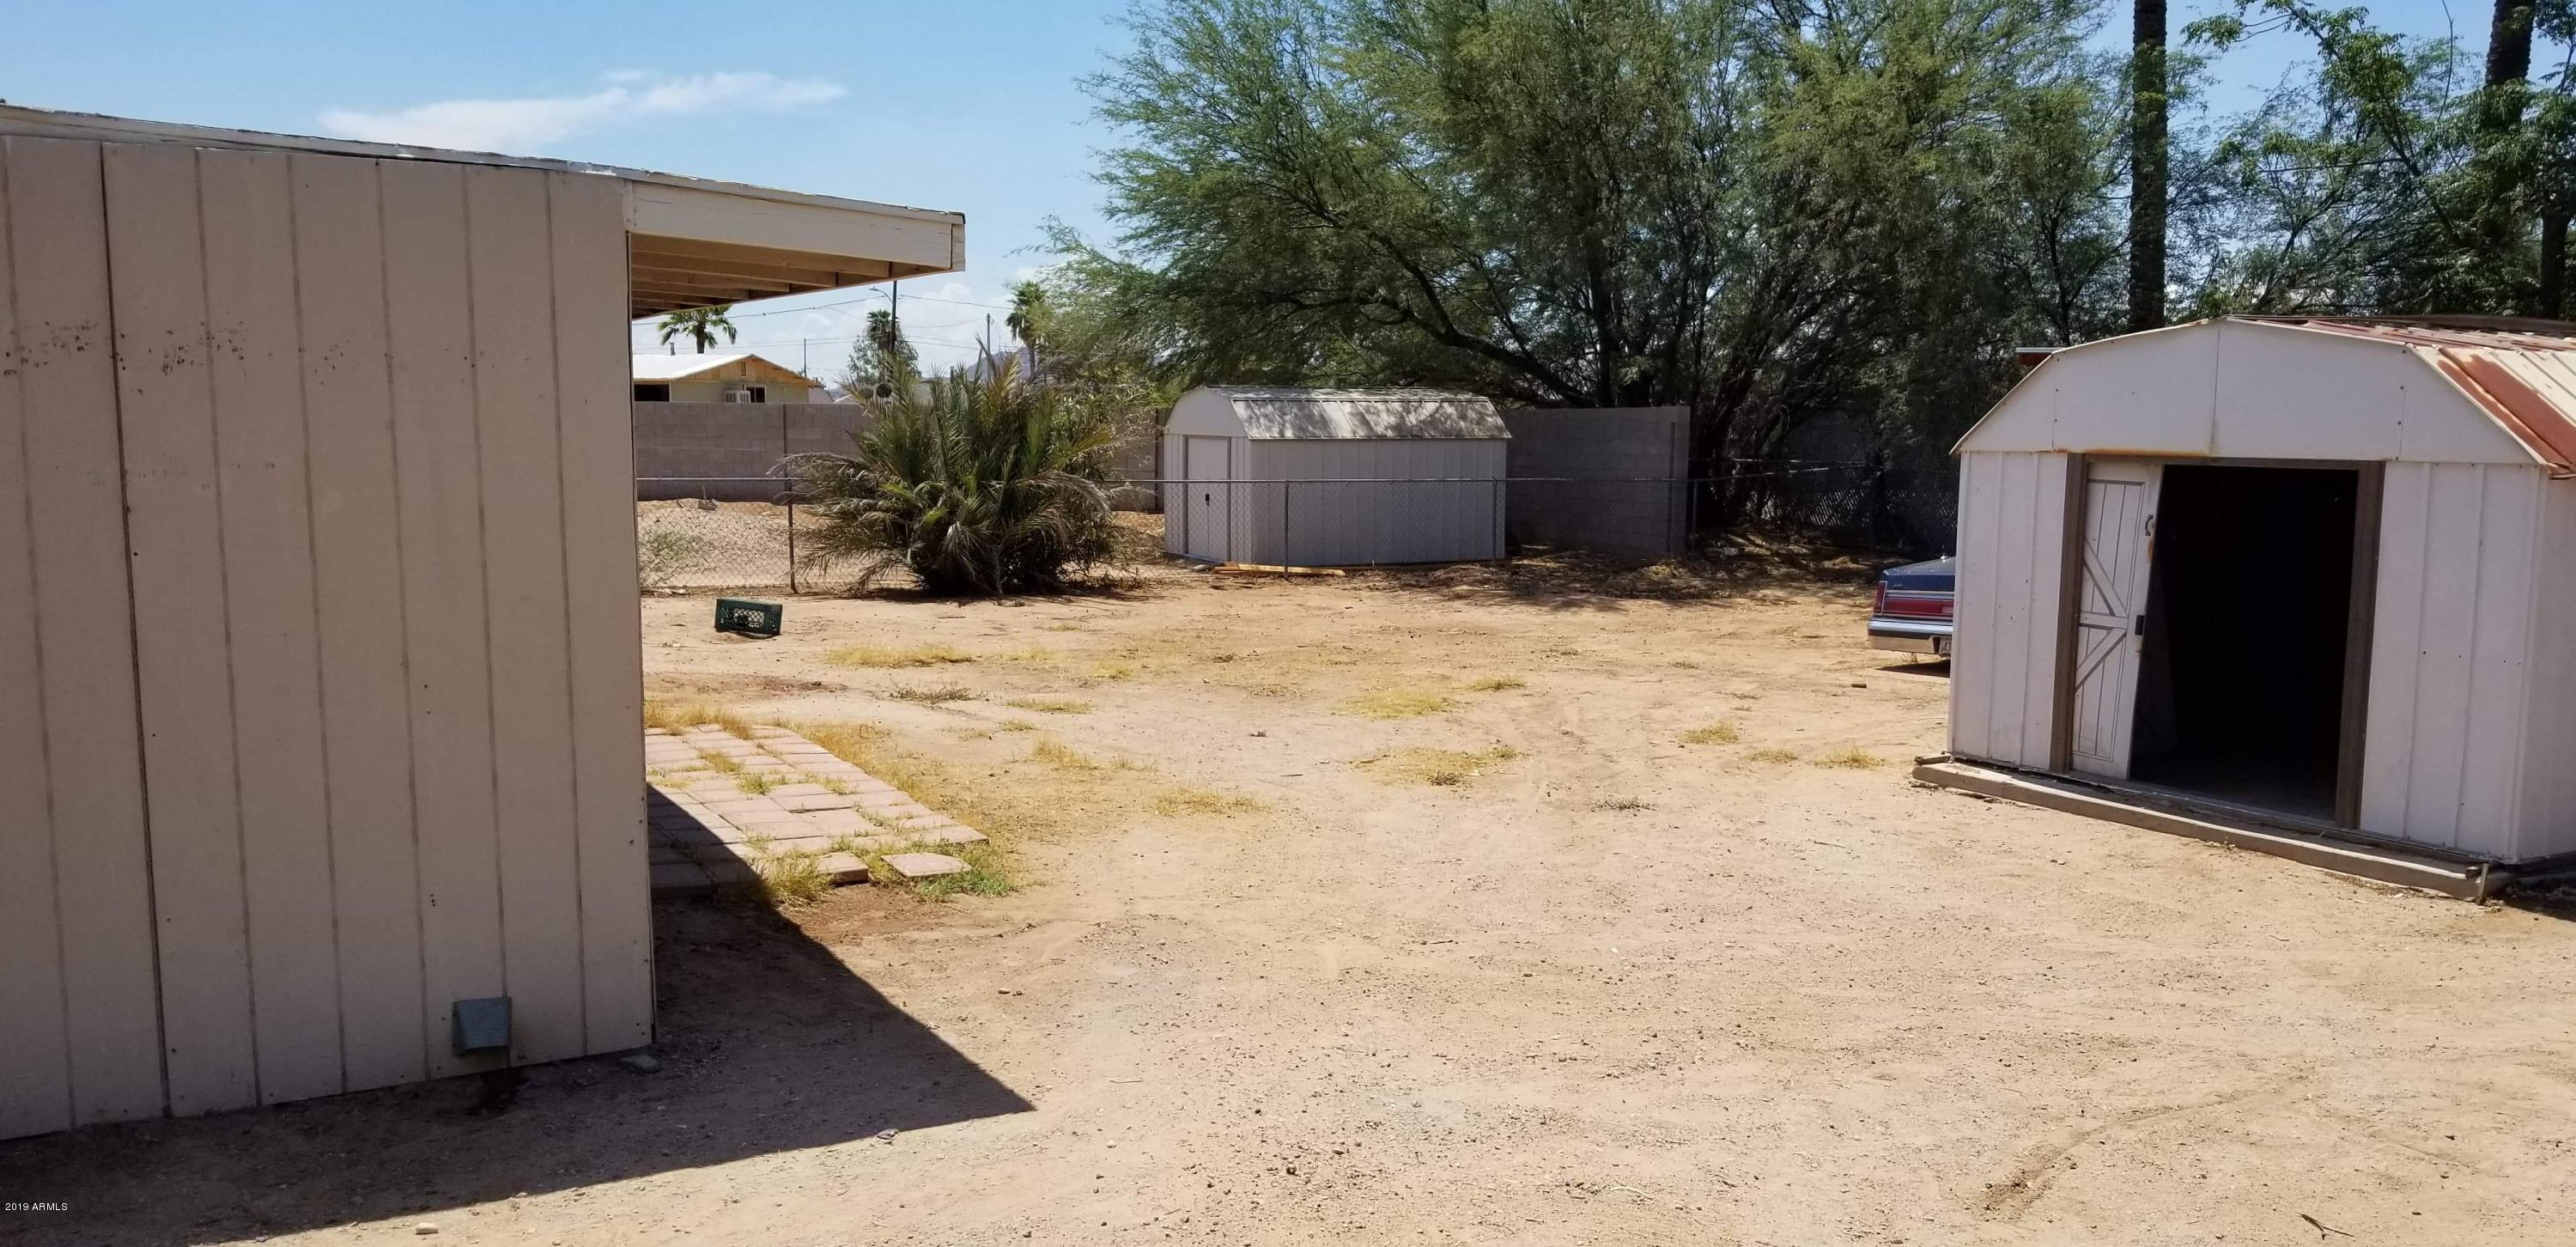 MLS 5961373 309 E 2ND Avenue, Casa Grande, AZ 85122 Casa Grande AZ REO Bank Owned Foreclosure